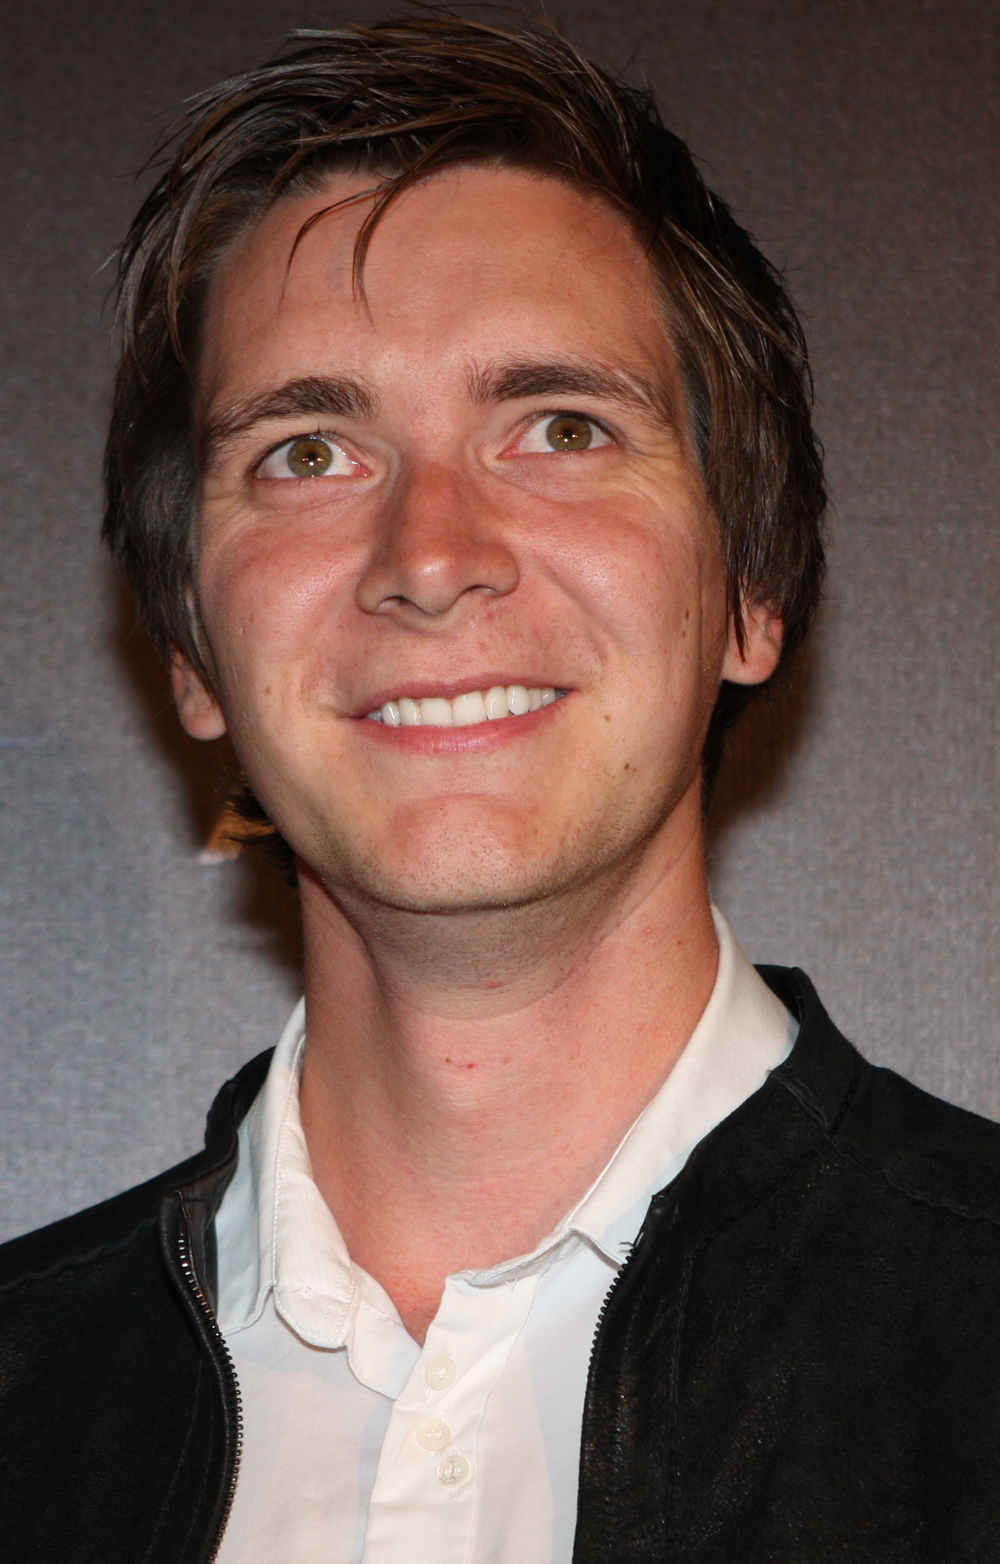 Oliver Phelps